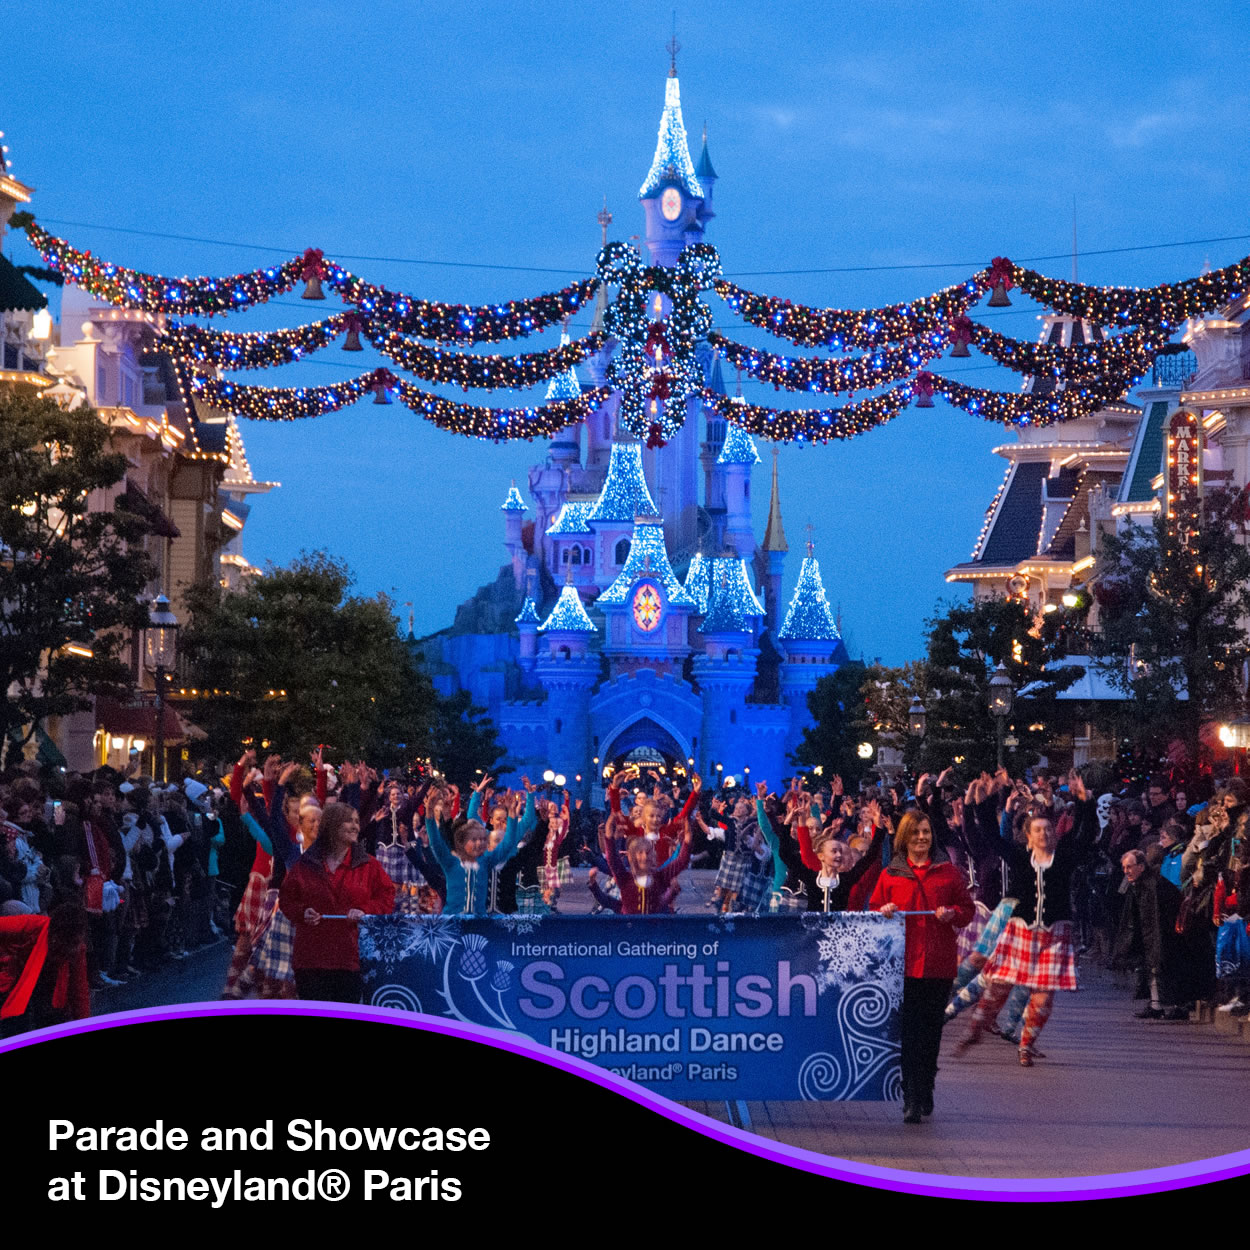 Parade and Showcase at Disneyland® Paris